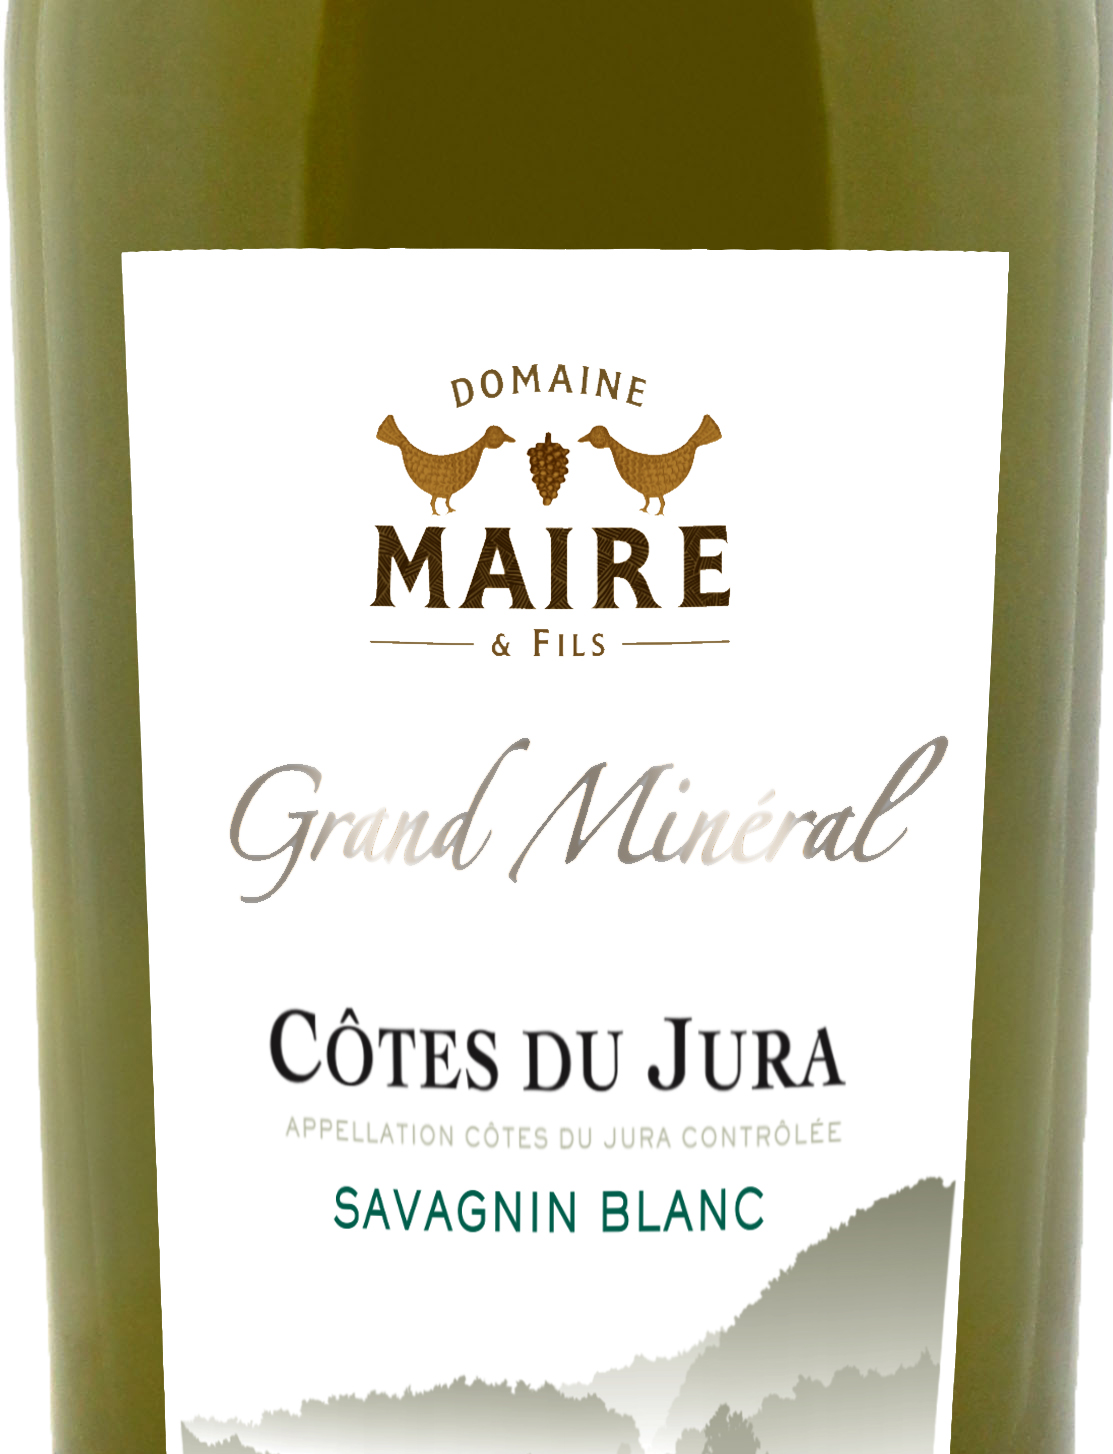 Fine Terroir Selections Offers Wines from Domaine Maire & Fils